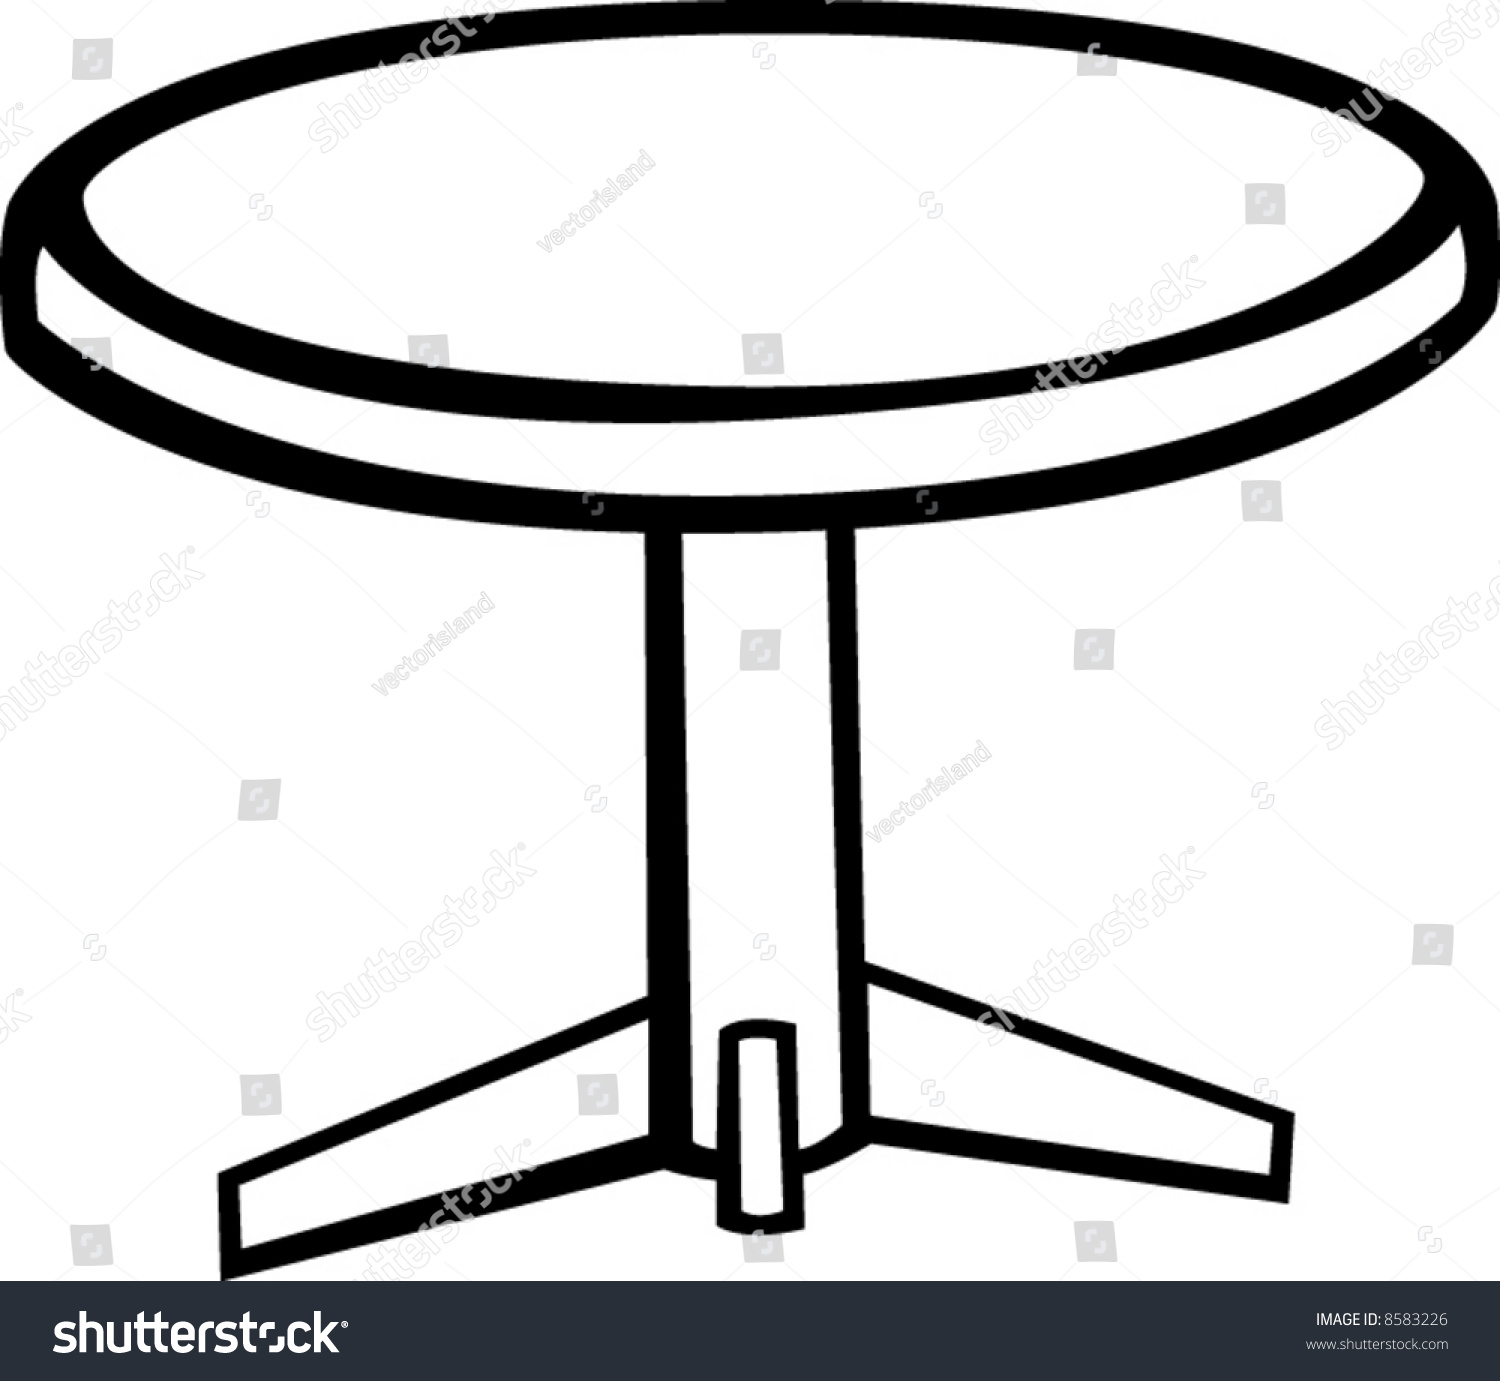 Pedestal Round Table Stock Vector  Shutterstock - Round table clip art